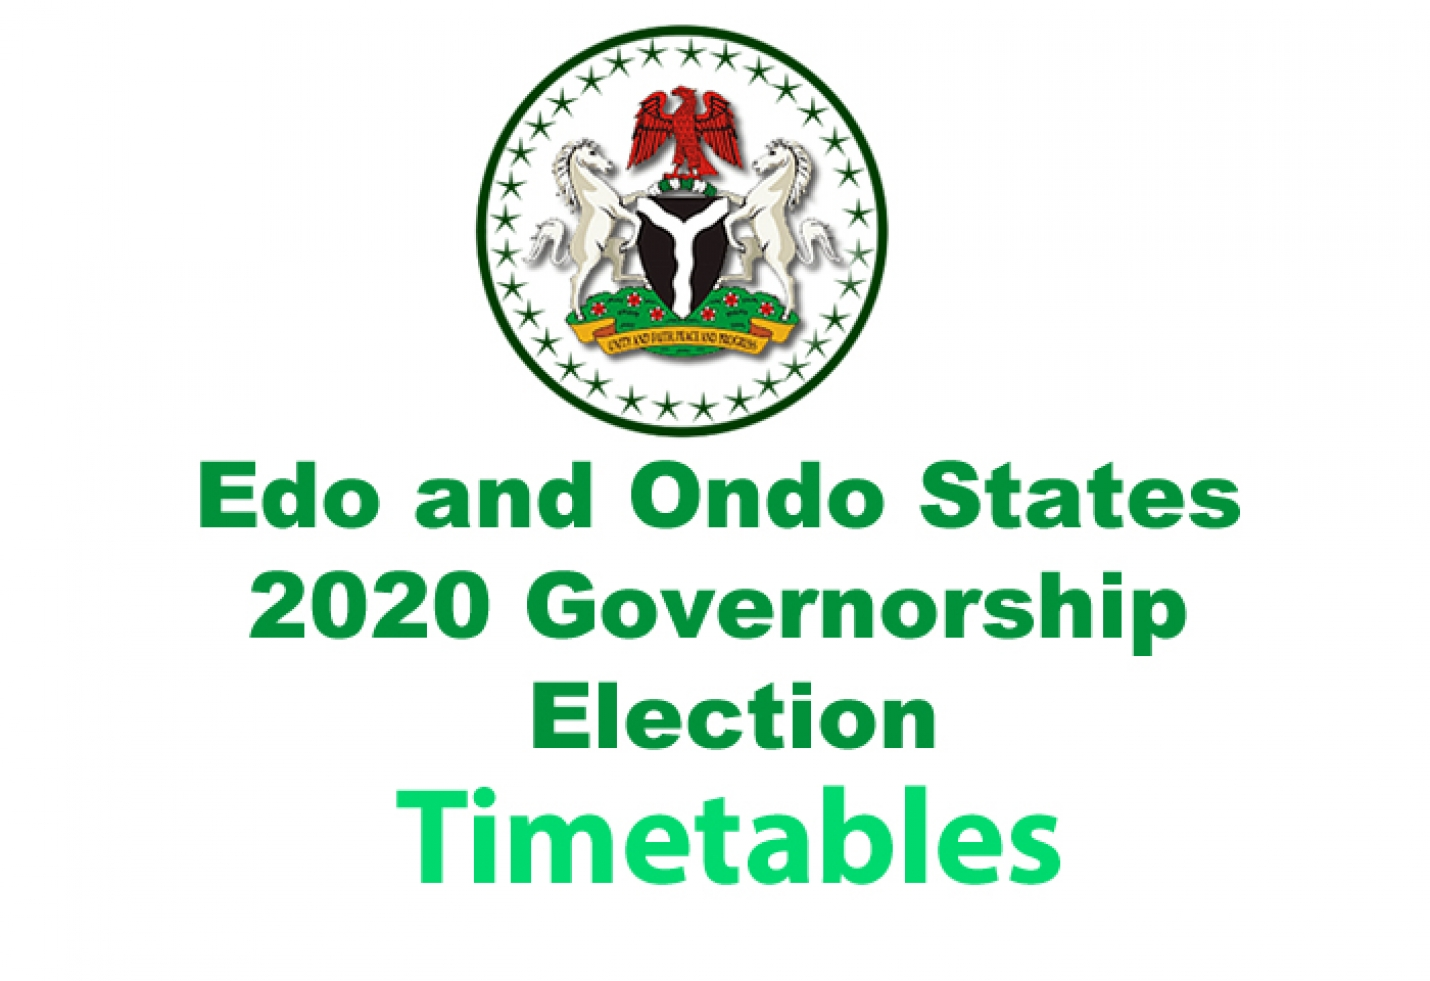 Edo and Ondo States 2020 Governorship Election Schedules